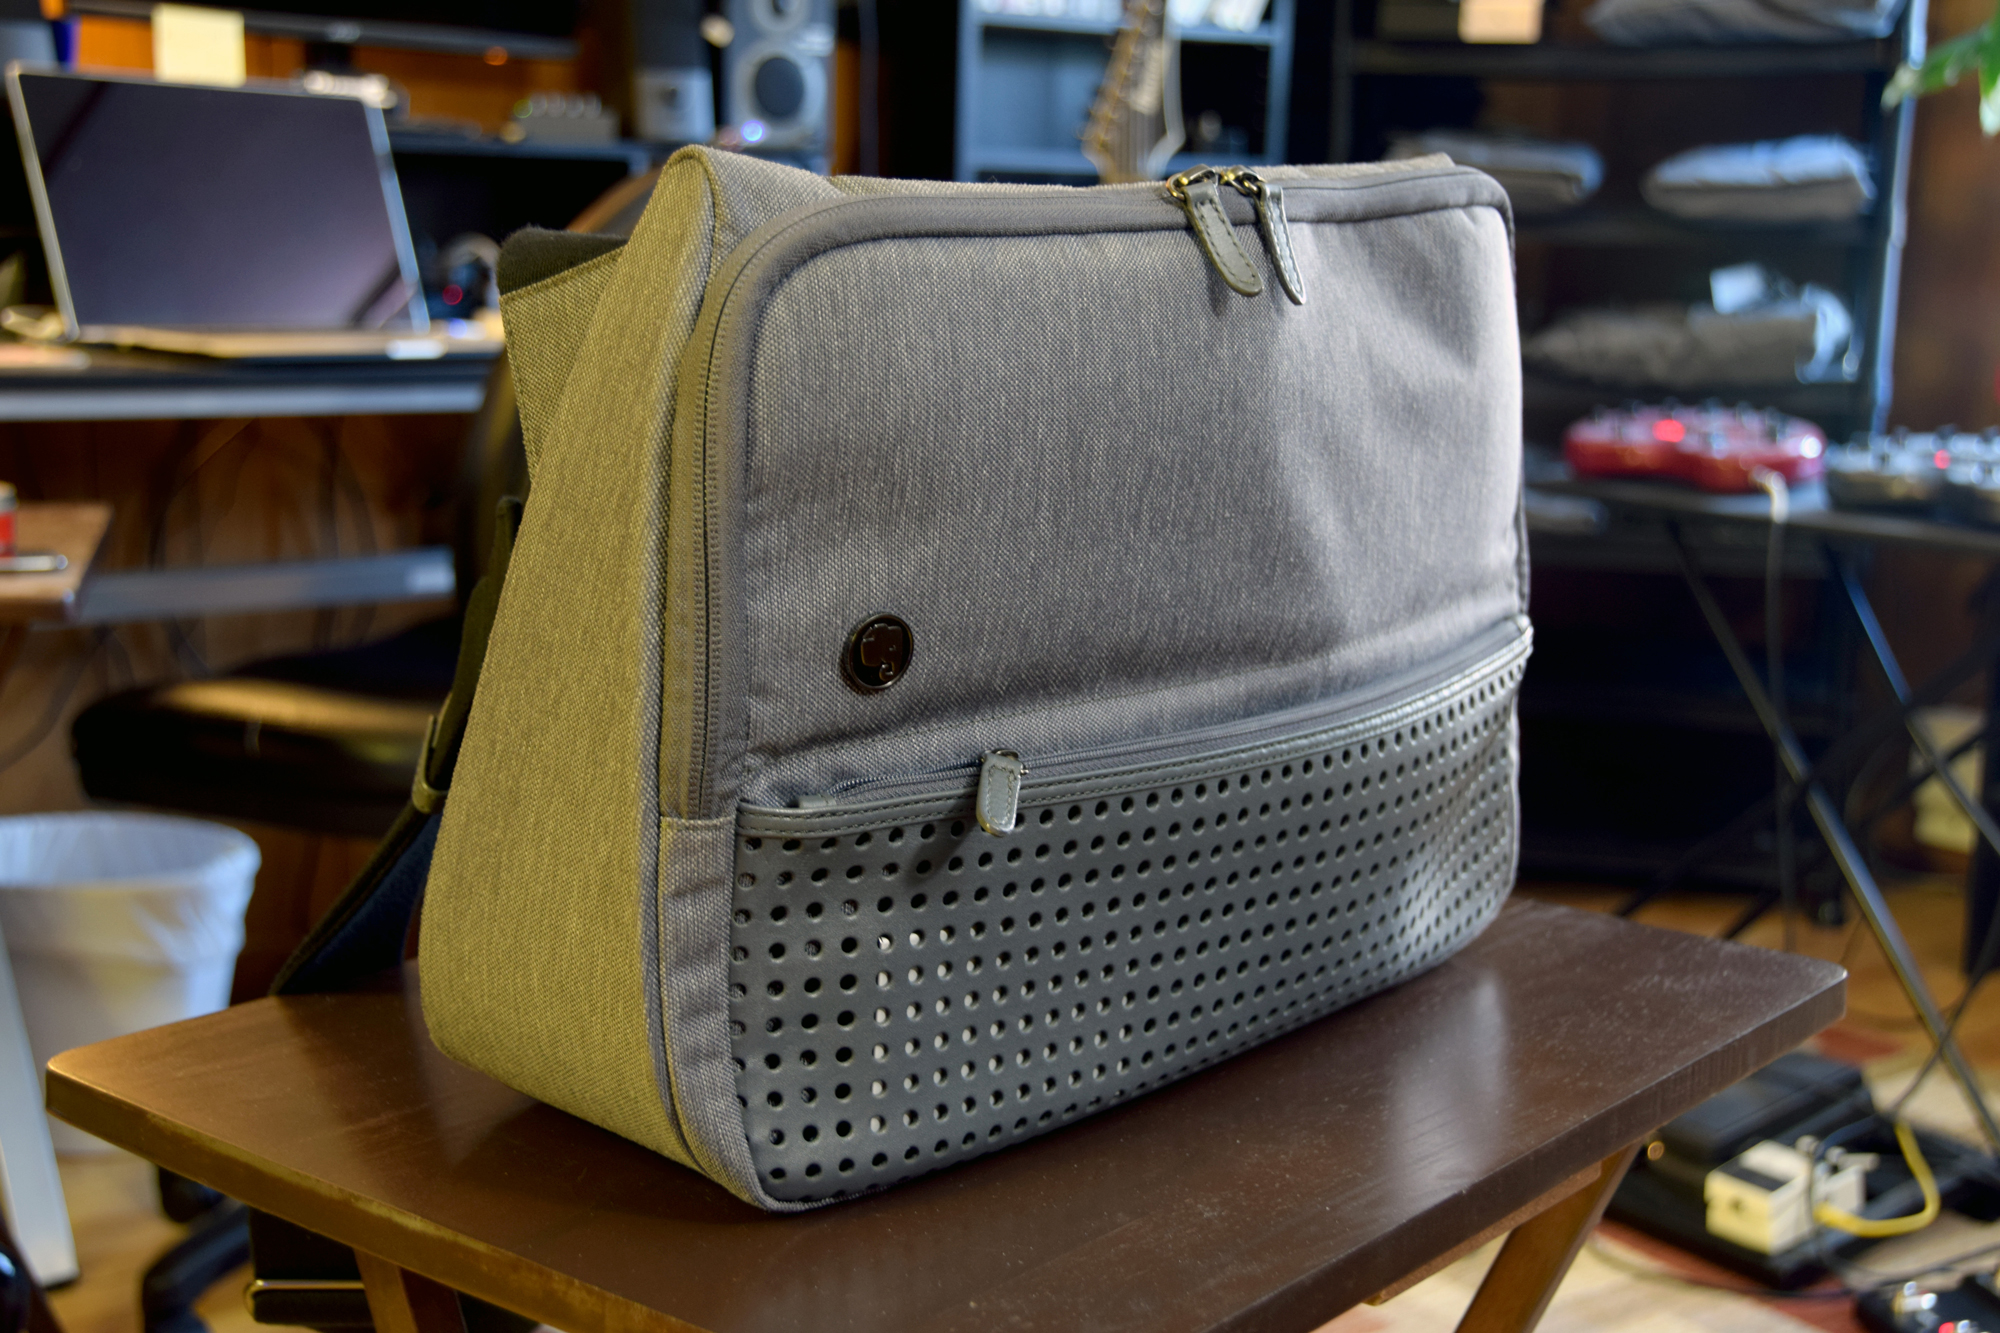 My Review The Evernote Triangle Commuter Bag Mr Best Reviews Hands On Product